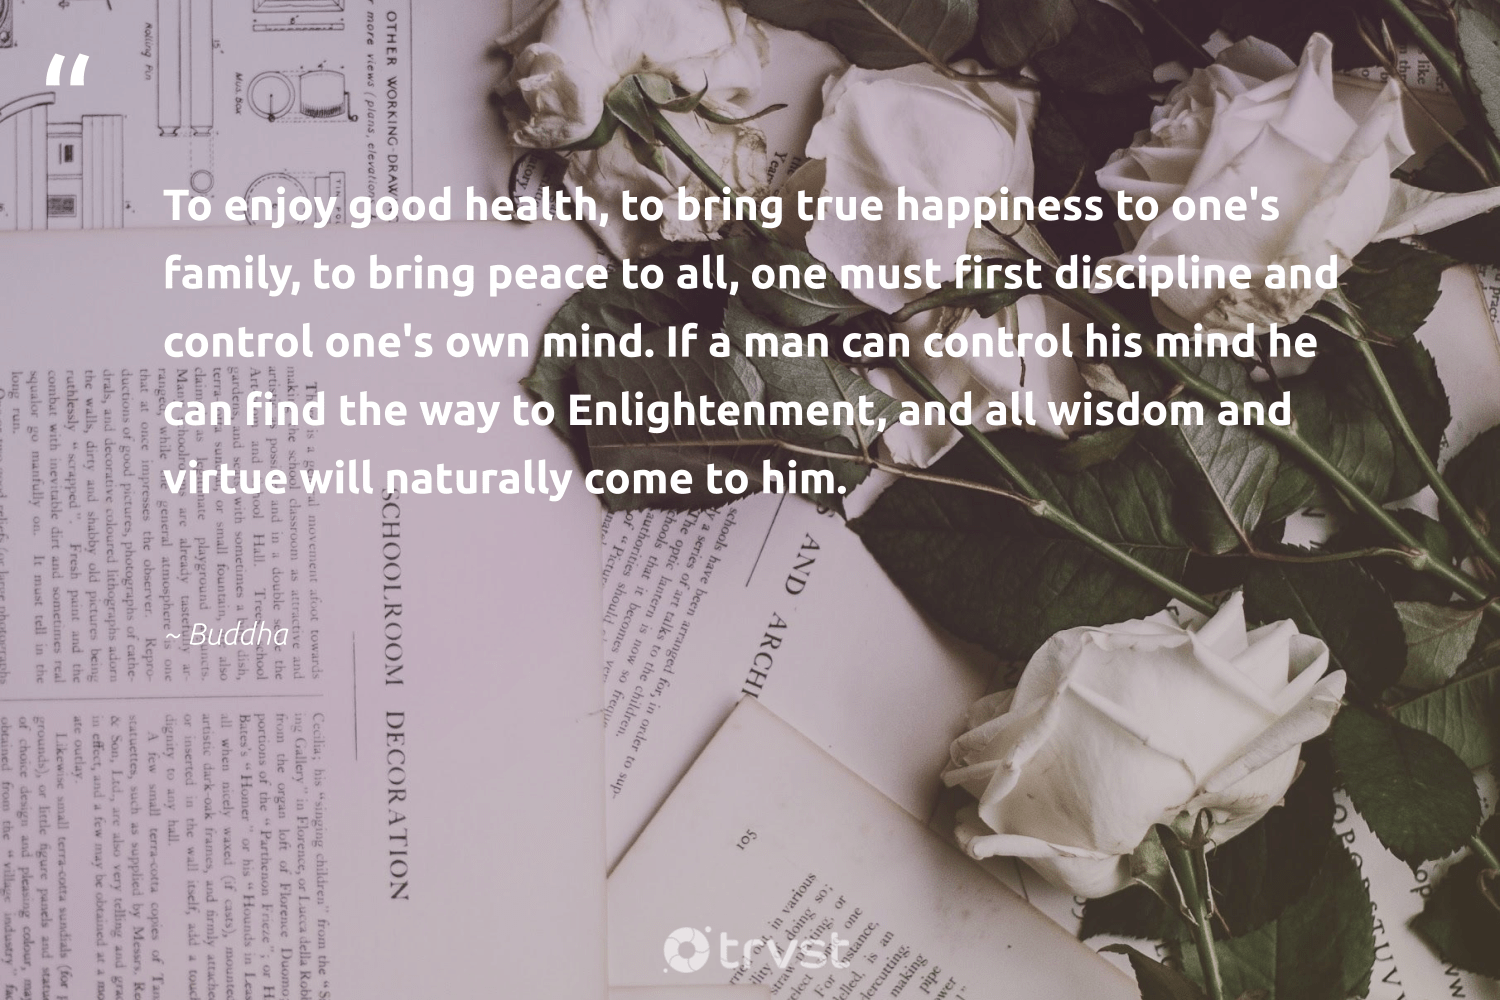 """""""To enjoy good health, to bring true happiness to one's family, to bring peace to all, one must first discipline and control one's own mind. If a man can control his mind he can find the way to Enlightenment, and all wisdom and virtue will naturally come to him.""""  - Buddha #trvst #quotes #peace #family #health #wisdom #happiness #activist #begreat #socialimpact #dogood #activism"""